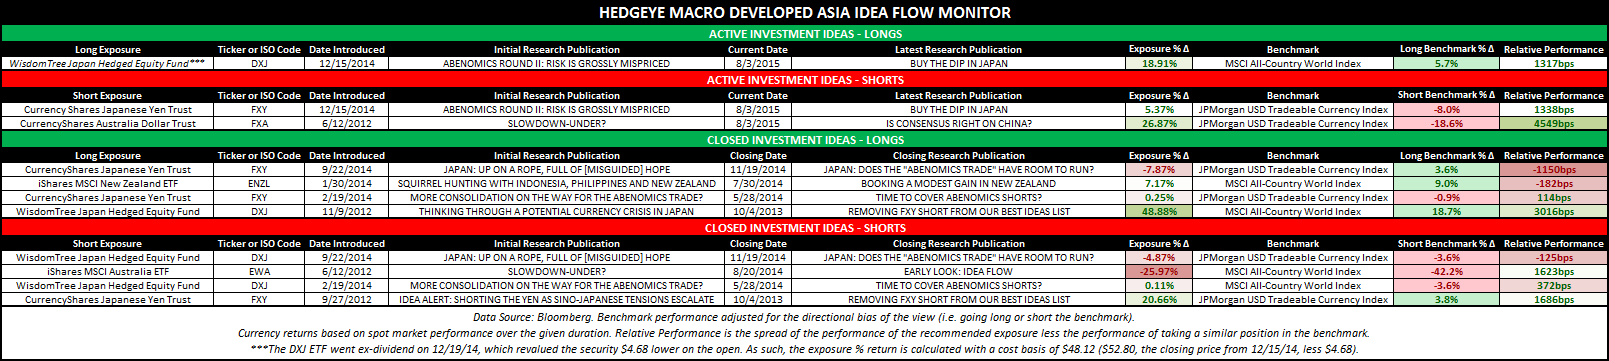 Making Sense of DM Asia, Emerging Market Macro Data - DM Idea Flow Monitor